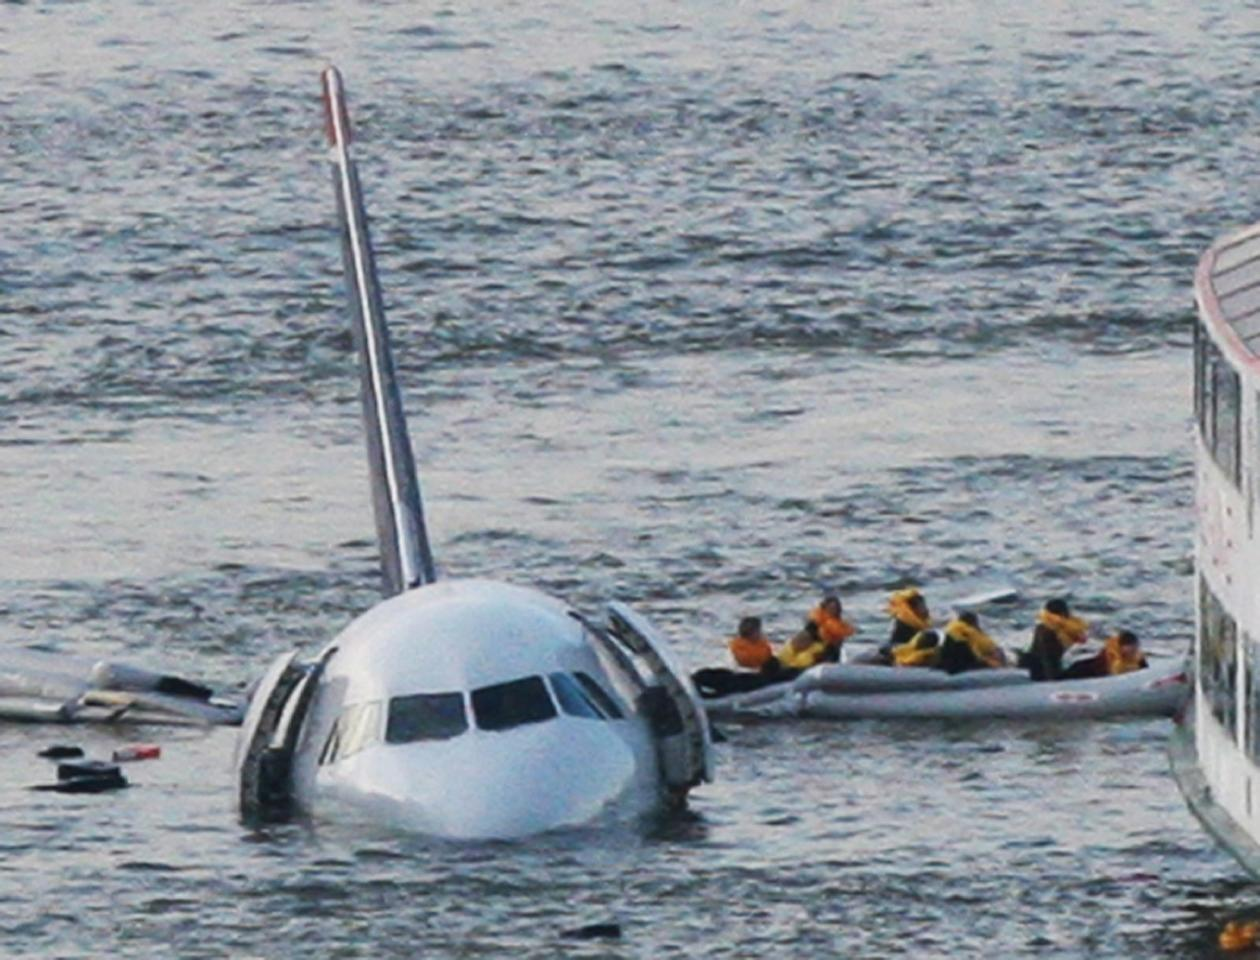 <p>Passengers are rescued from US Airways Flight 1549 after it crashed in the Hudson River on Jan. 15, 2009.<br />(Photo from AP) </p>